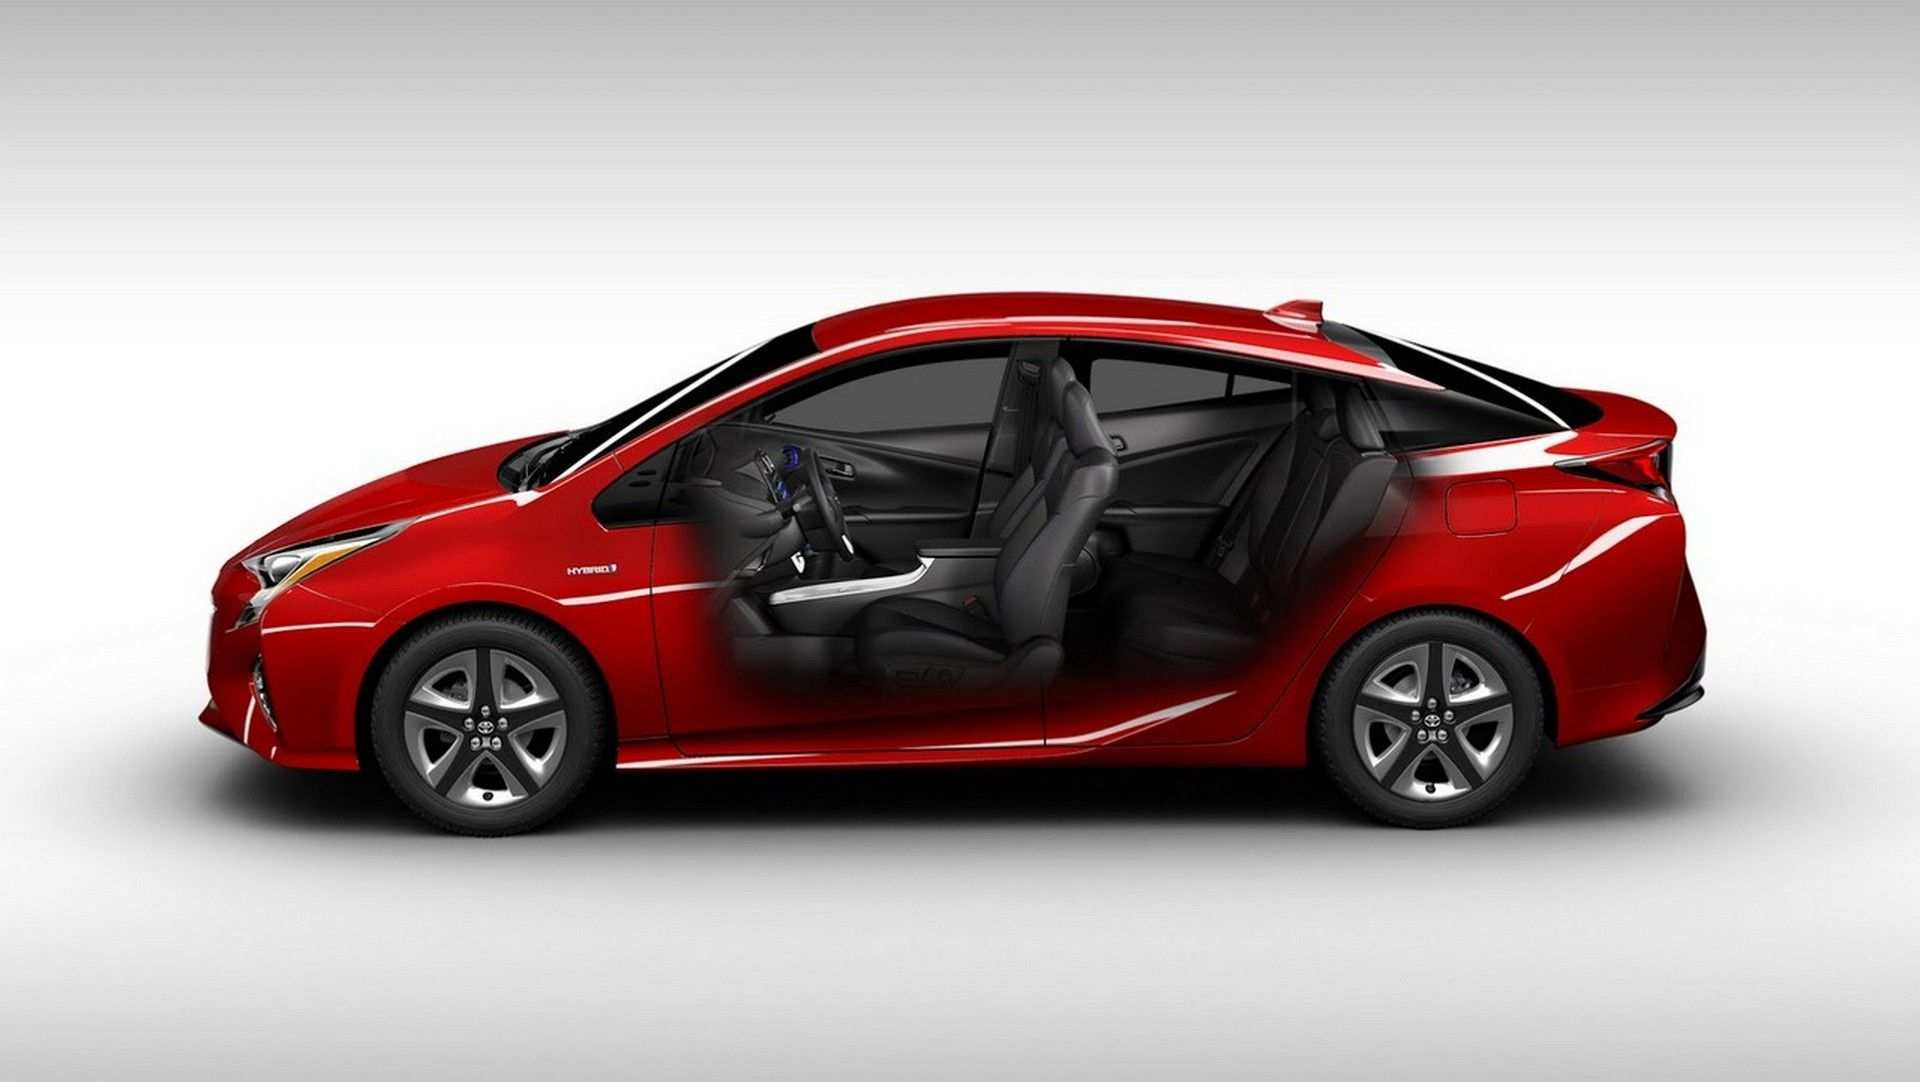 59 The Best 2020 Toyota Prius Price And Release Date